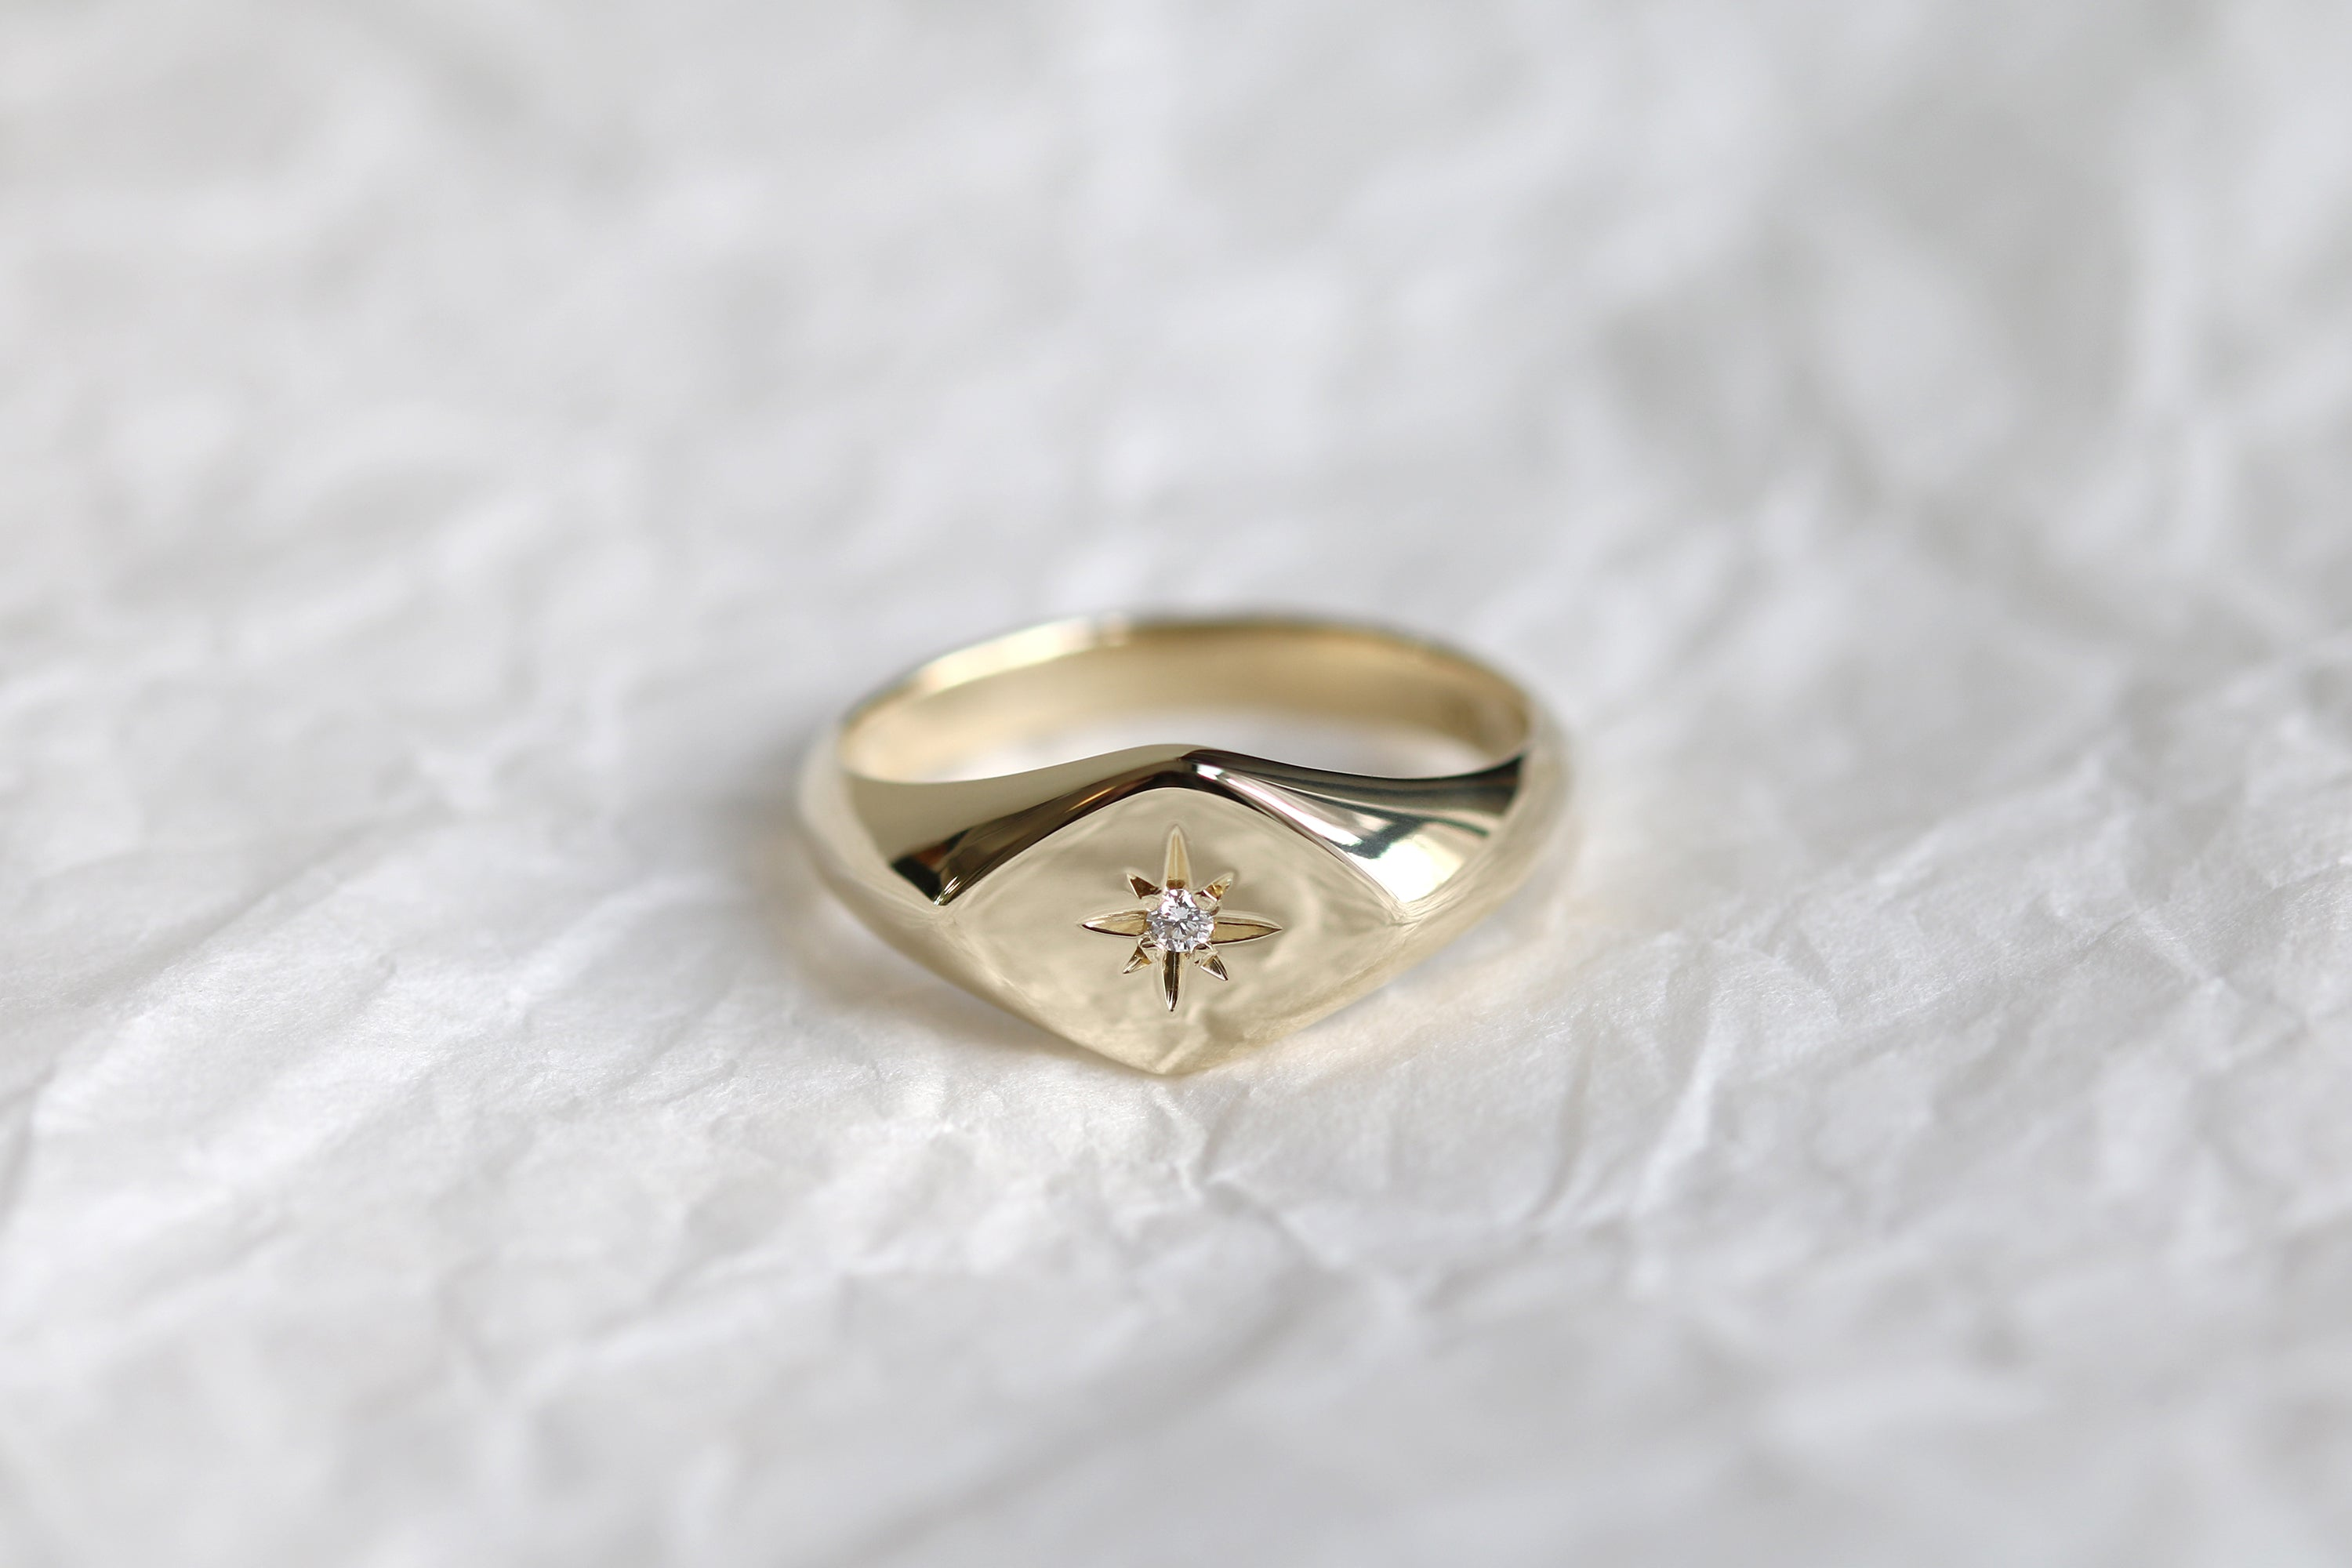 yellow gold signet ring with diamond